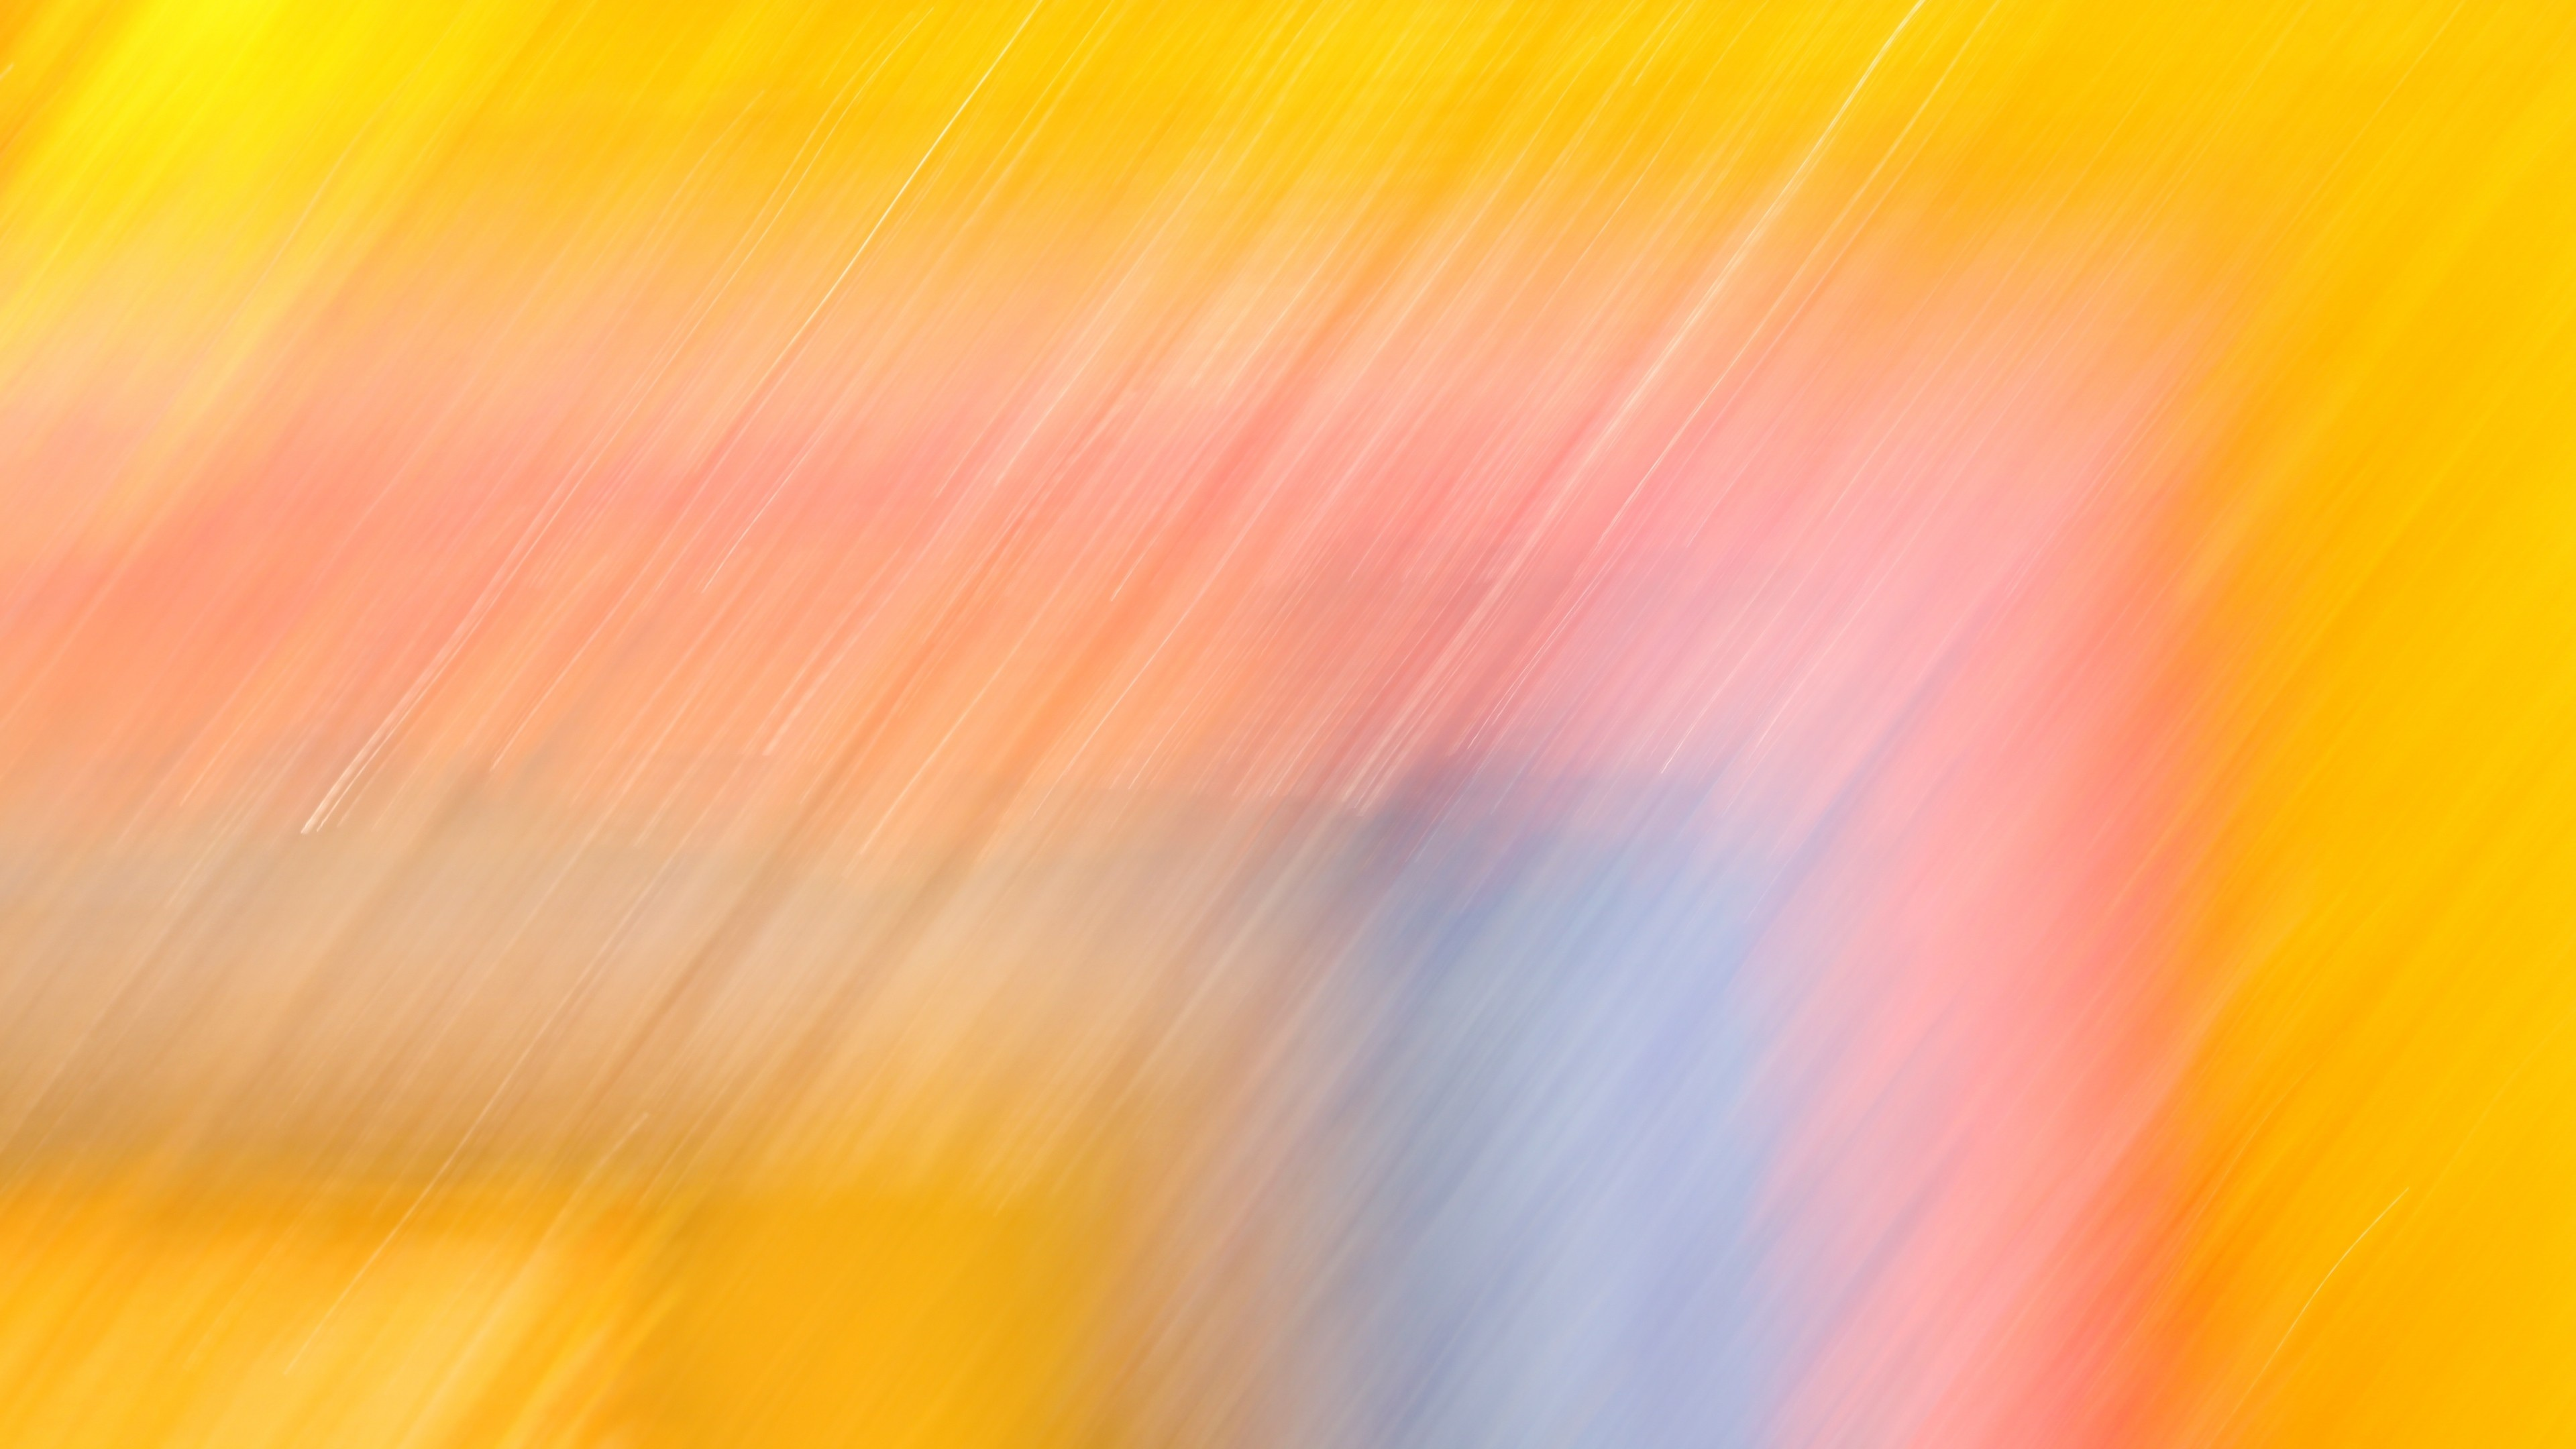 Yellow Bright Abstract Lines 4k